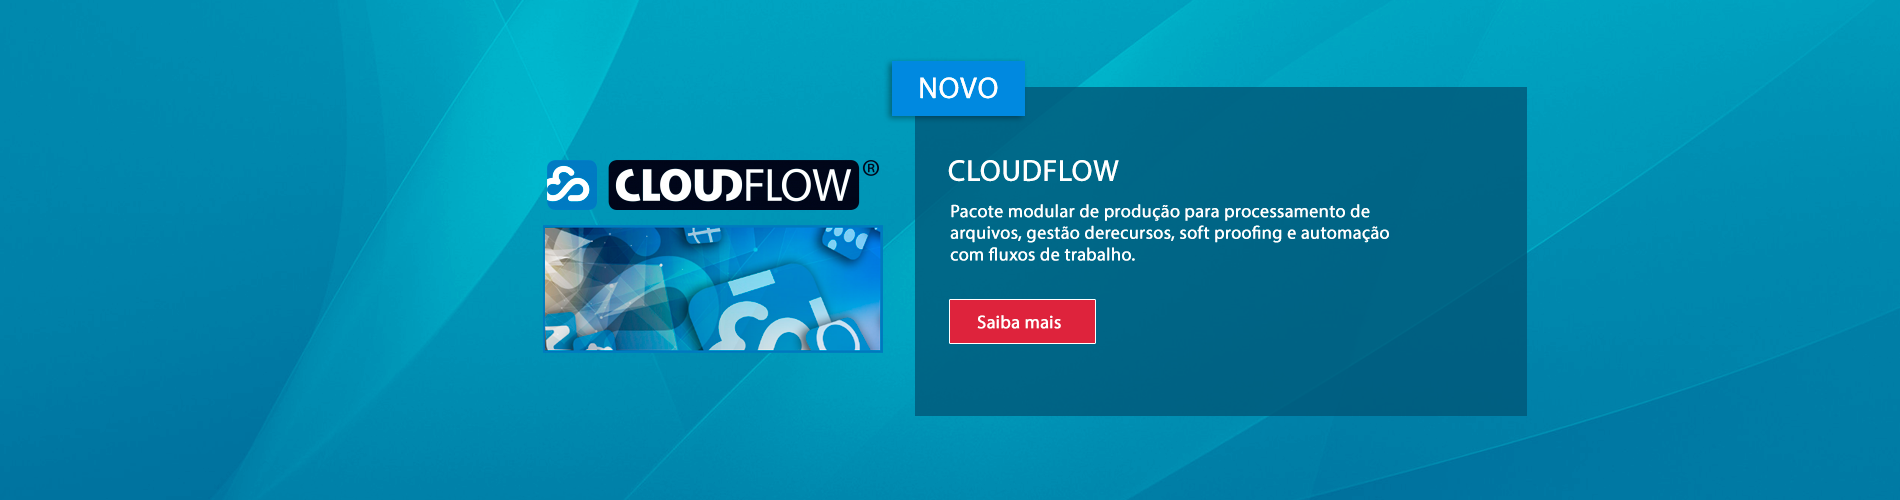 slide_cloudflow